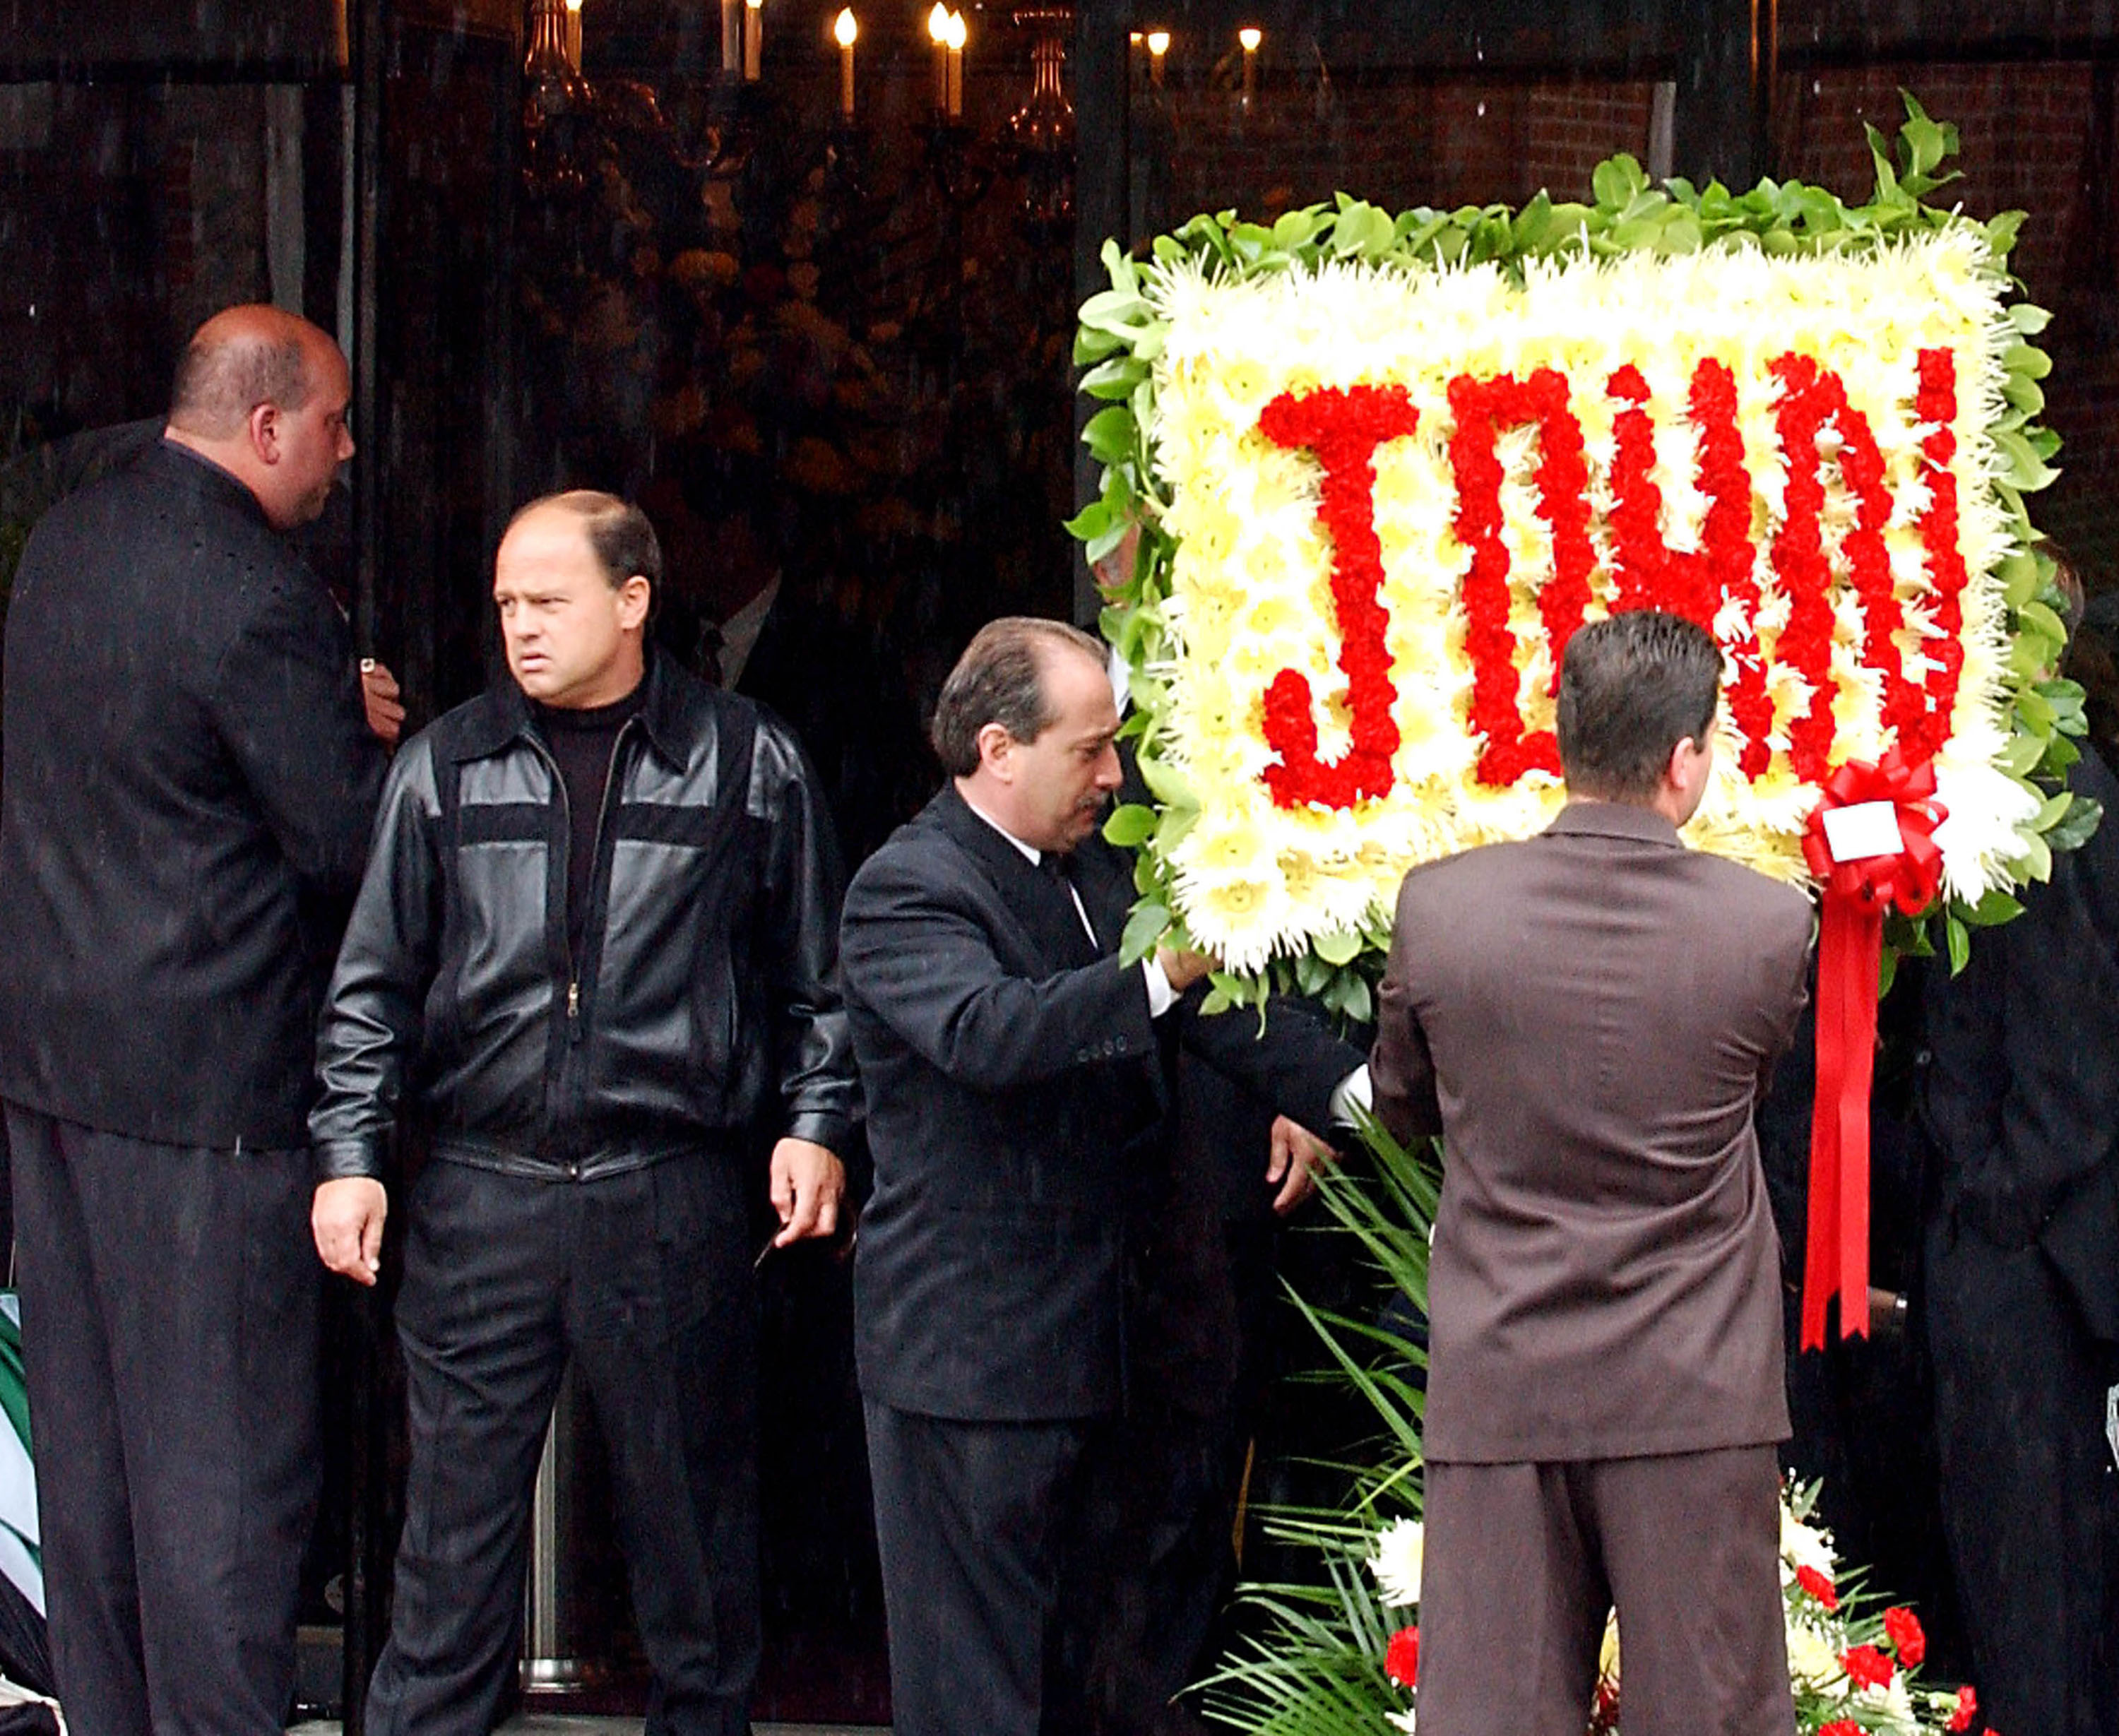 A floral arrangement with the name John spelled in flowers is placed in front of the Papavero funeral home for the wake of the late mobster John Gotti, June 14, 2002 in the Queens borough of New York City. Gotti will to be interred in a crypt the following day at St John's Cemetery in Middle Village, Queens.